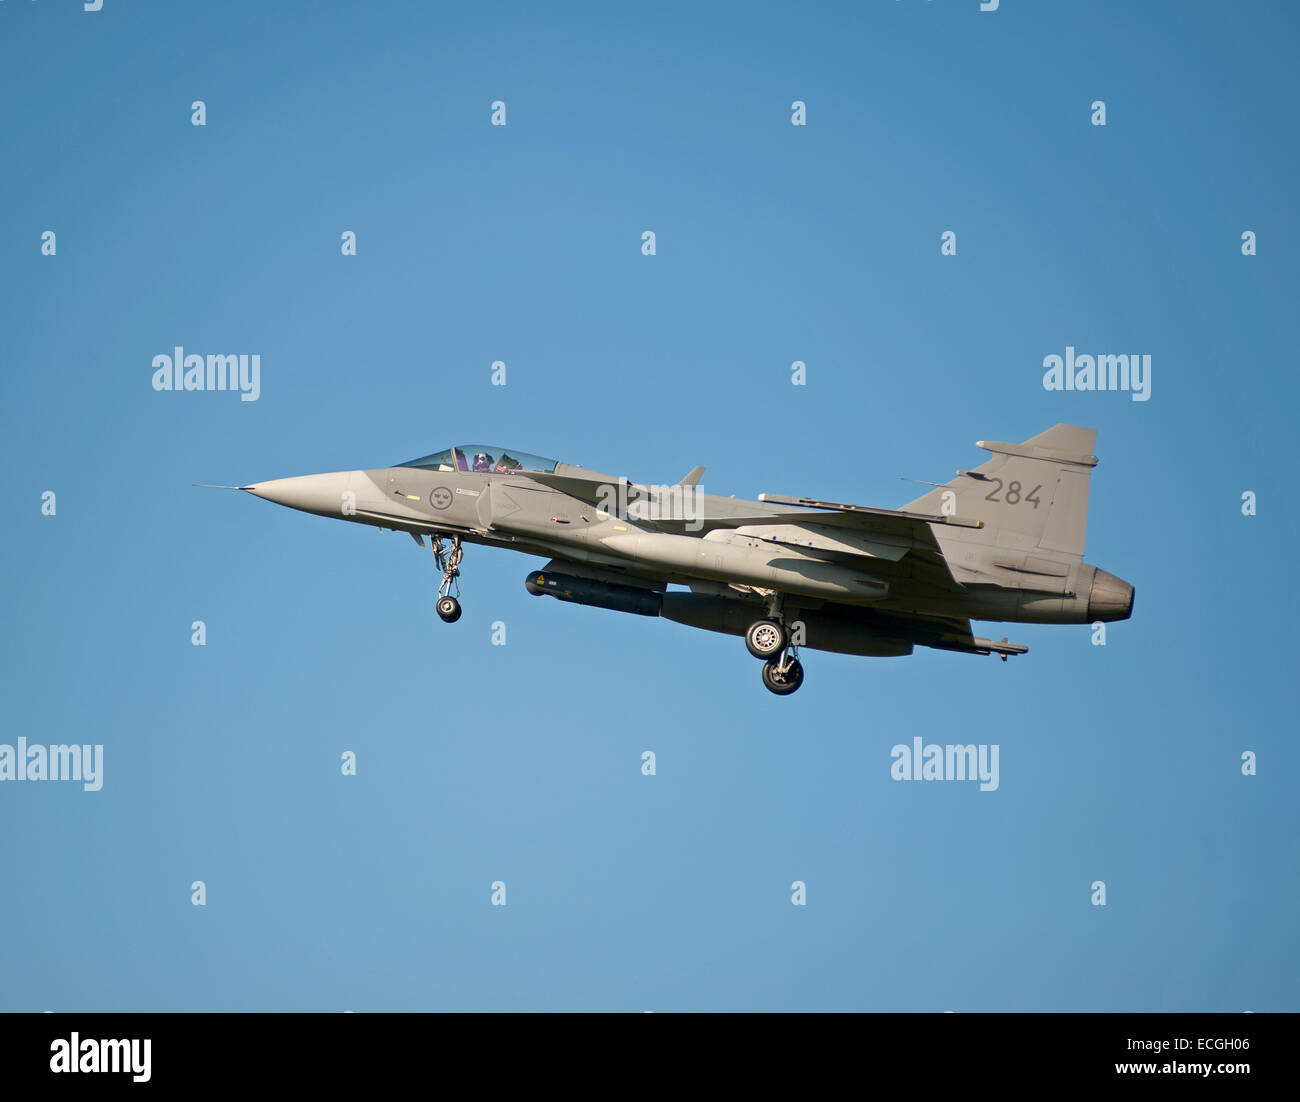 Swedish Saab Gripen Military Fighter No 284 approaching RAF Lossiemouth, Scotland.  SCO 9355. - Stock Image